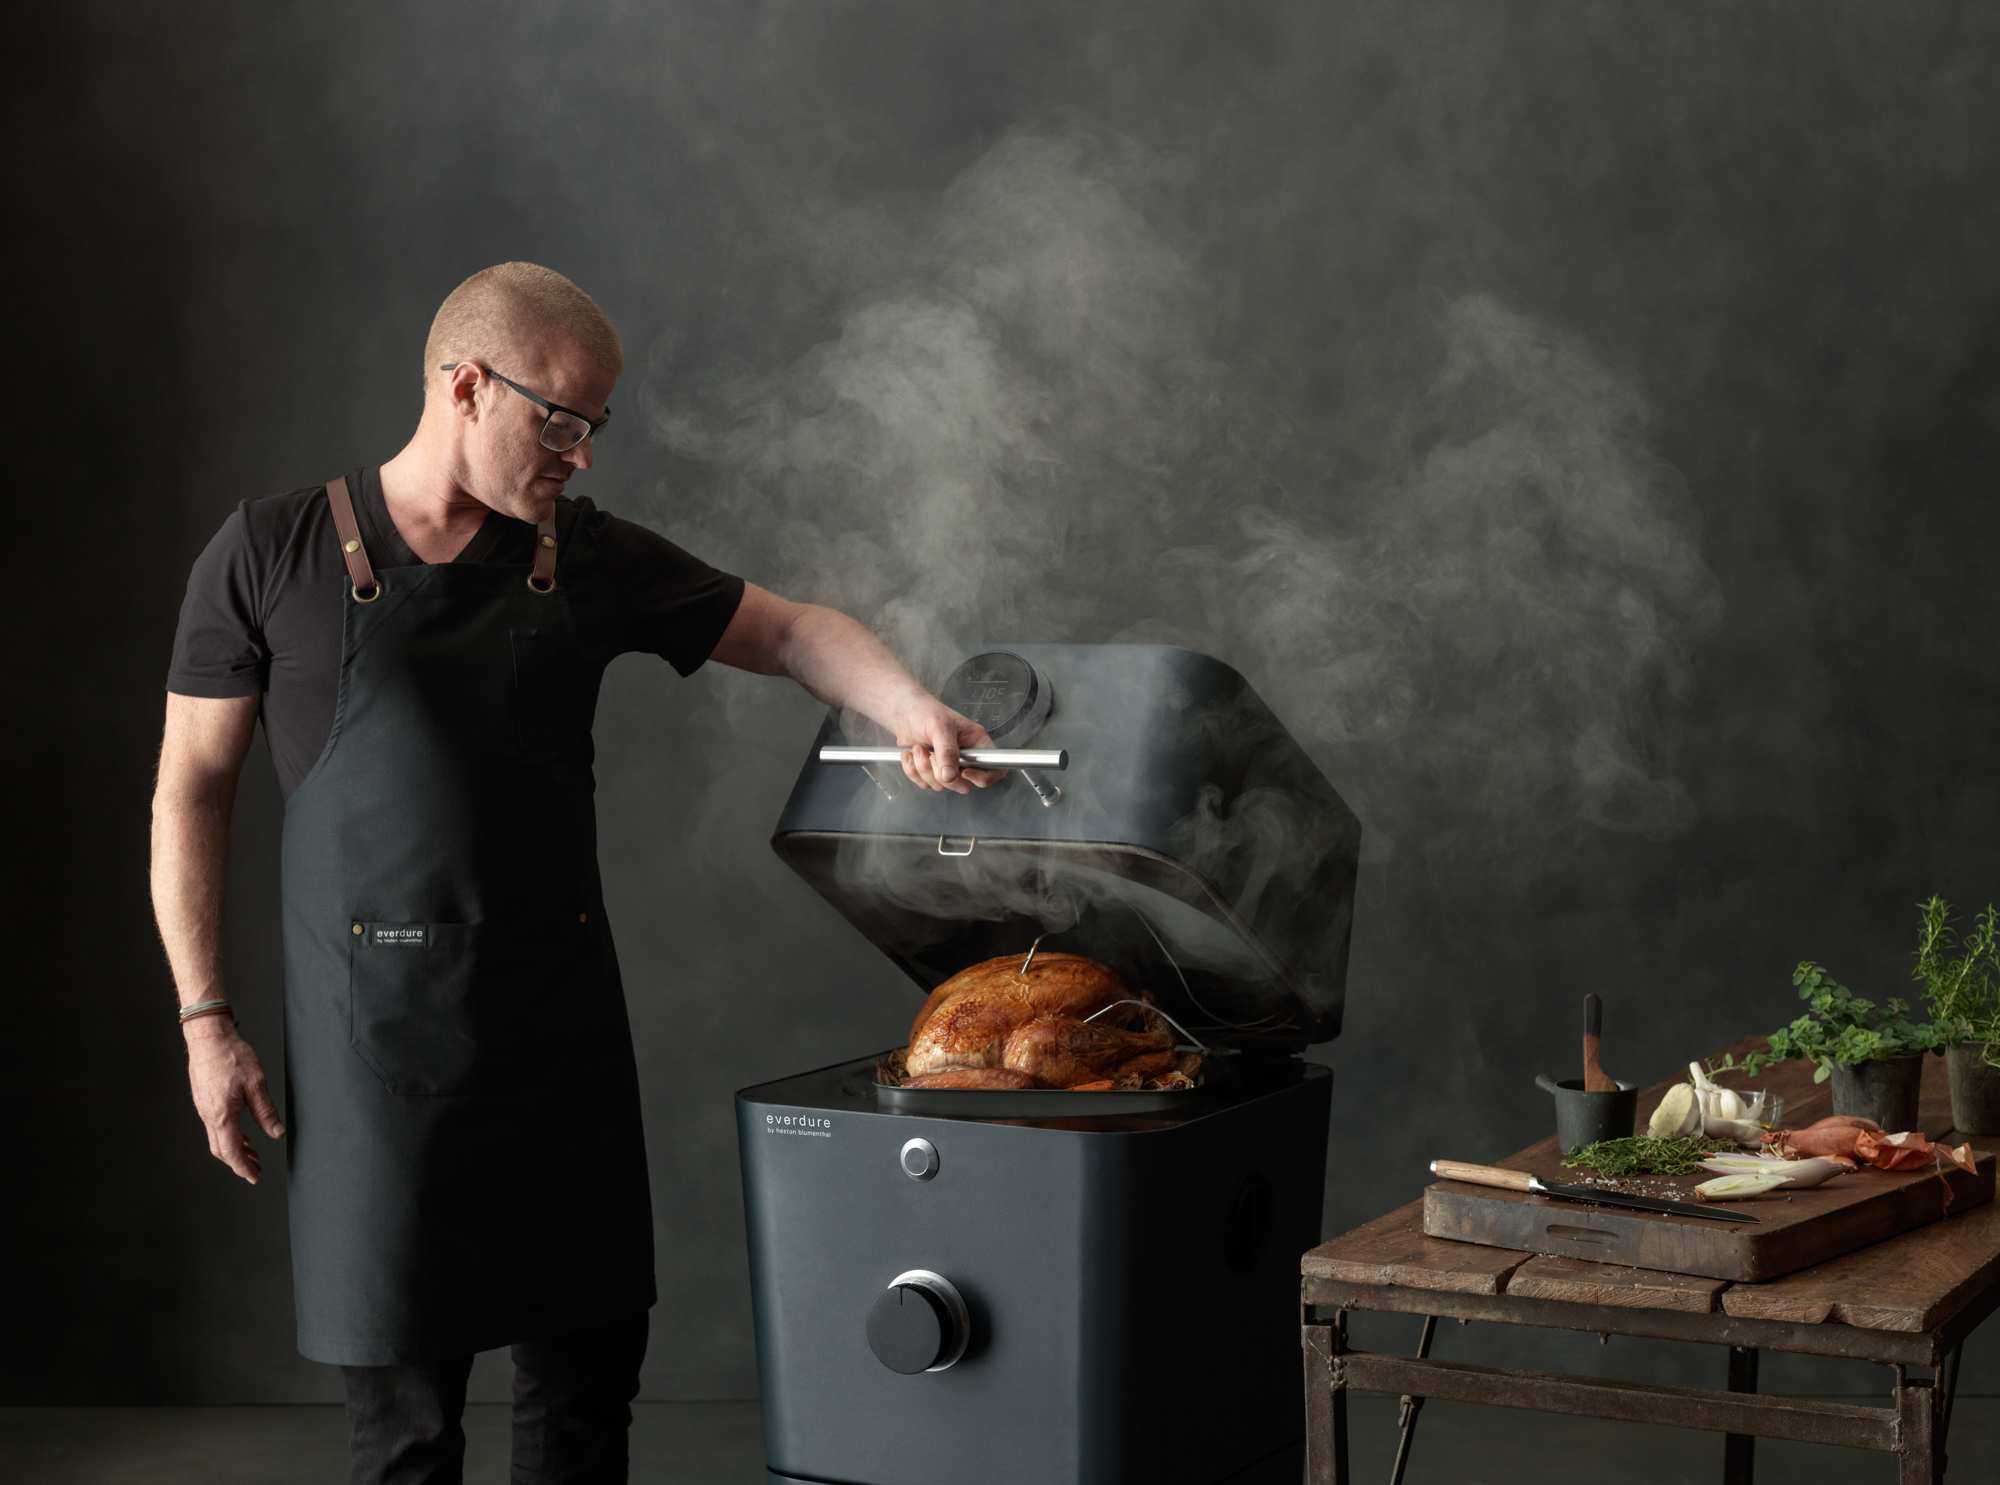 Everdure 4K workshop heston blumenthal